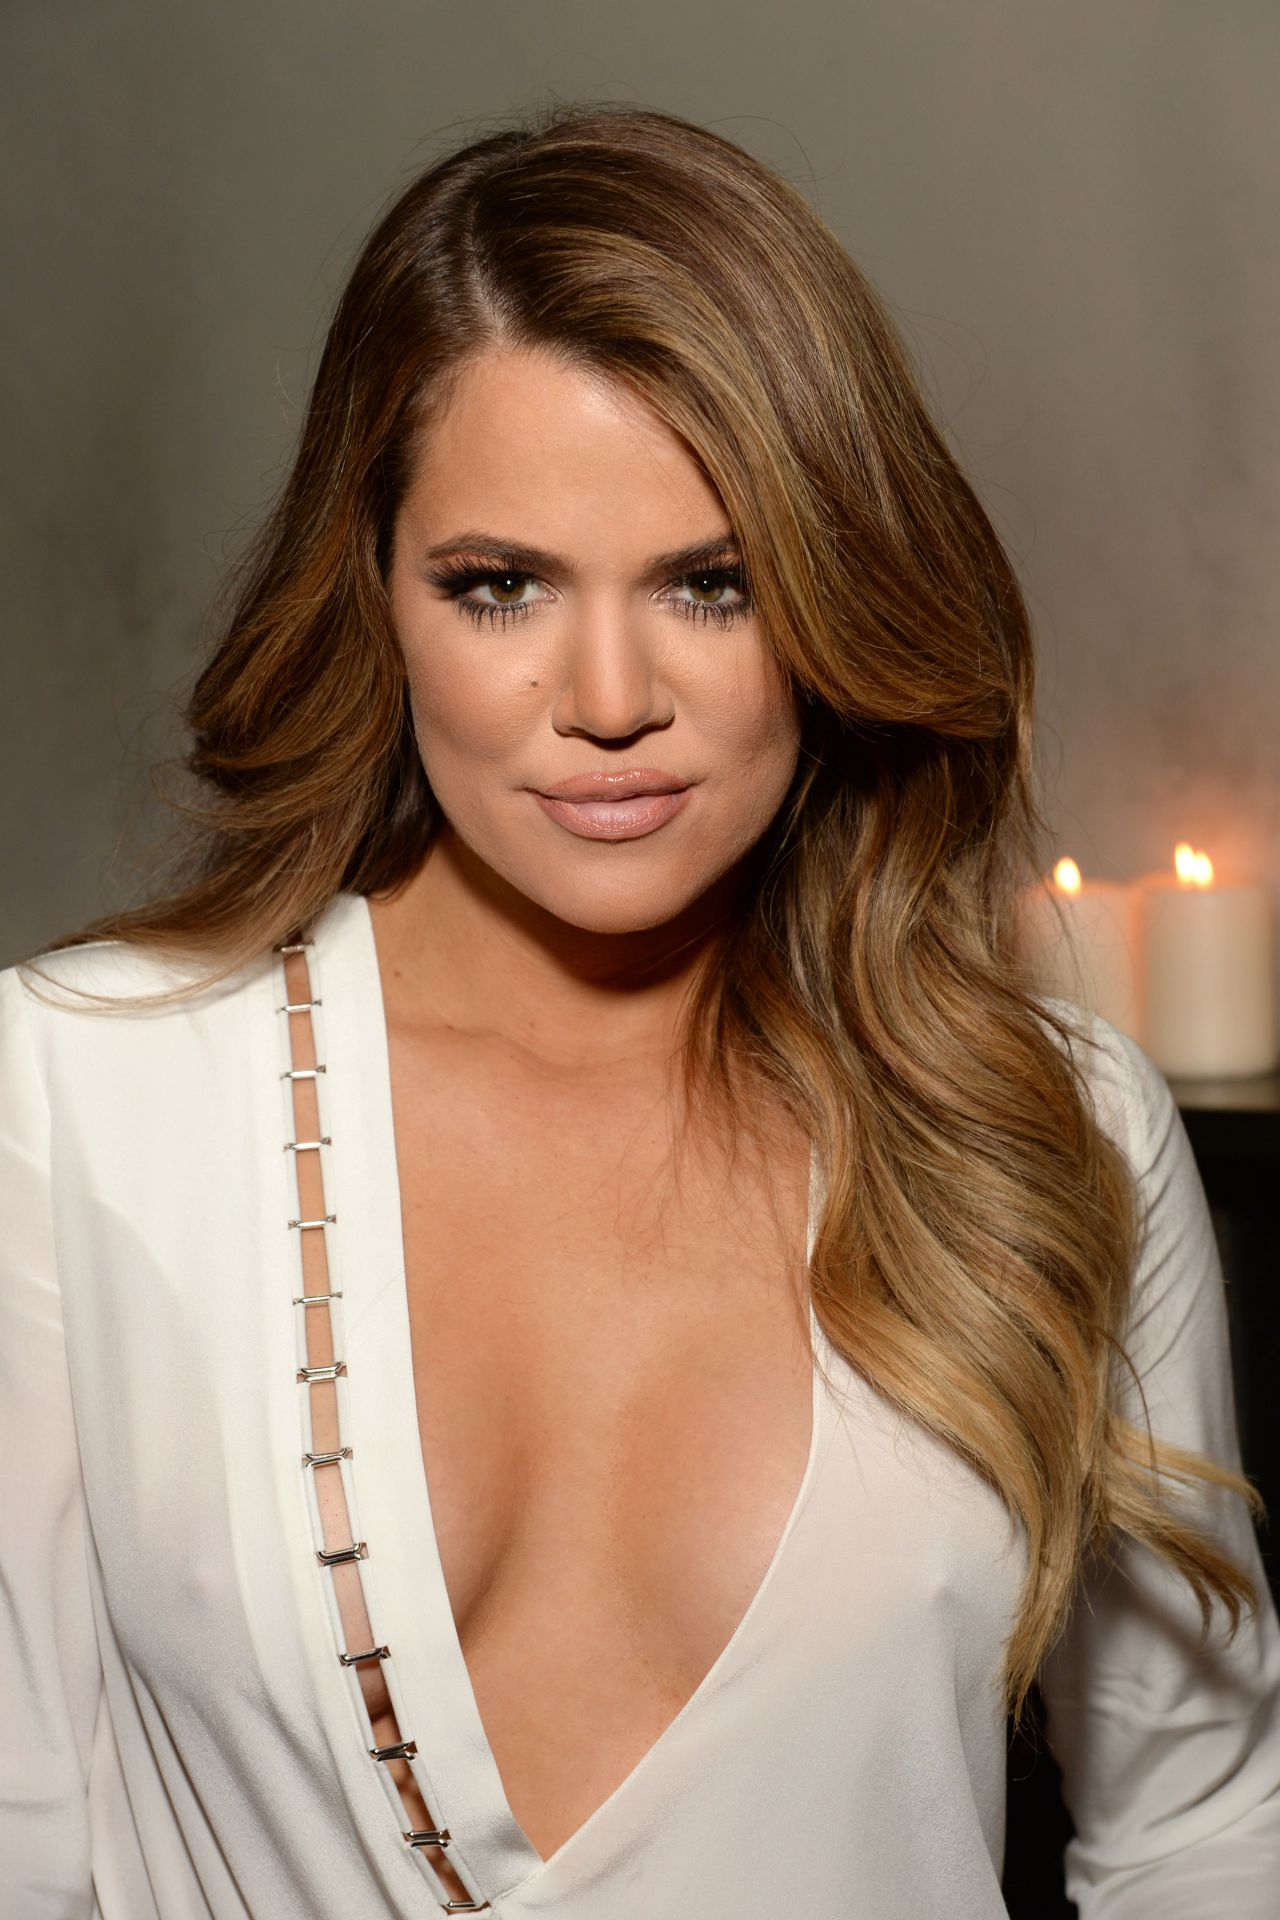 Khloe Kardashian Simon Huck S Command Entertainment